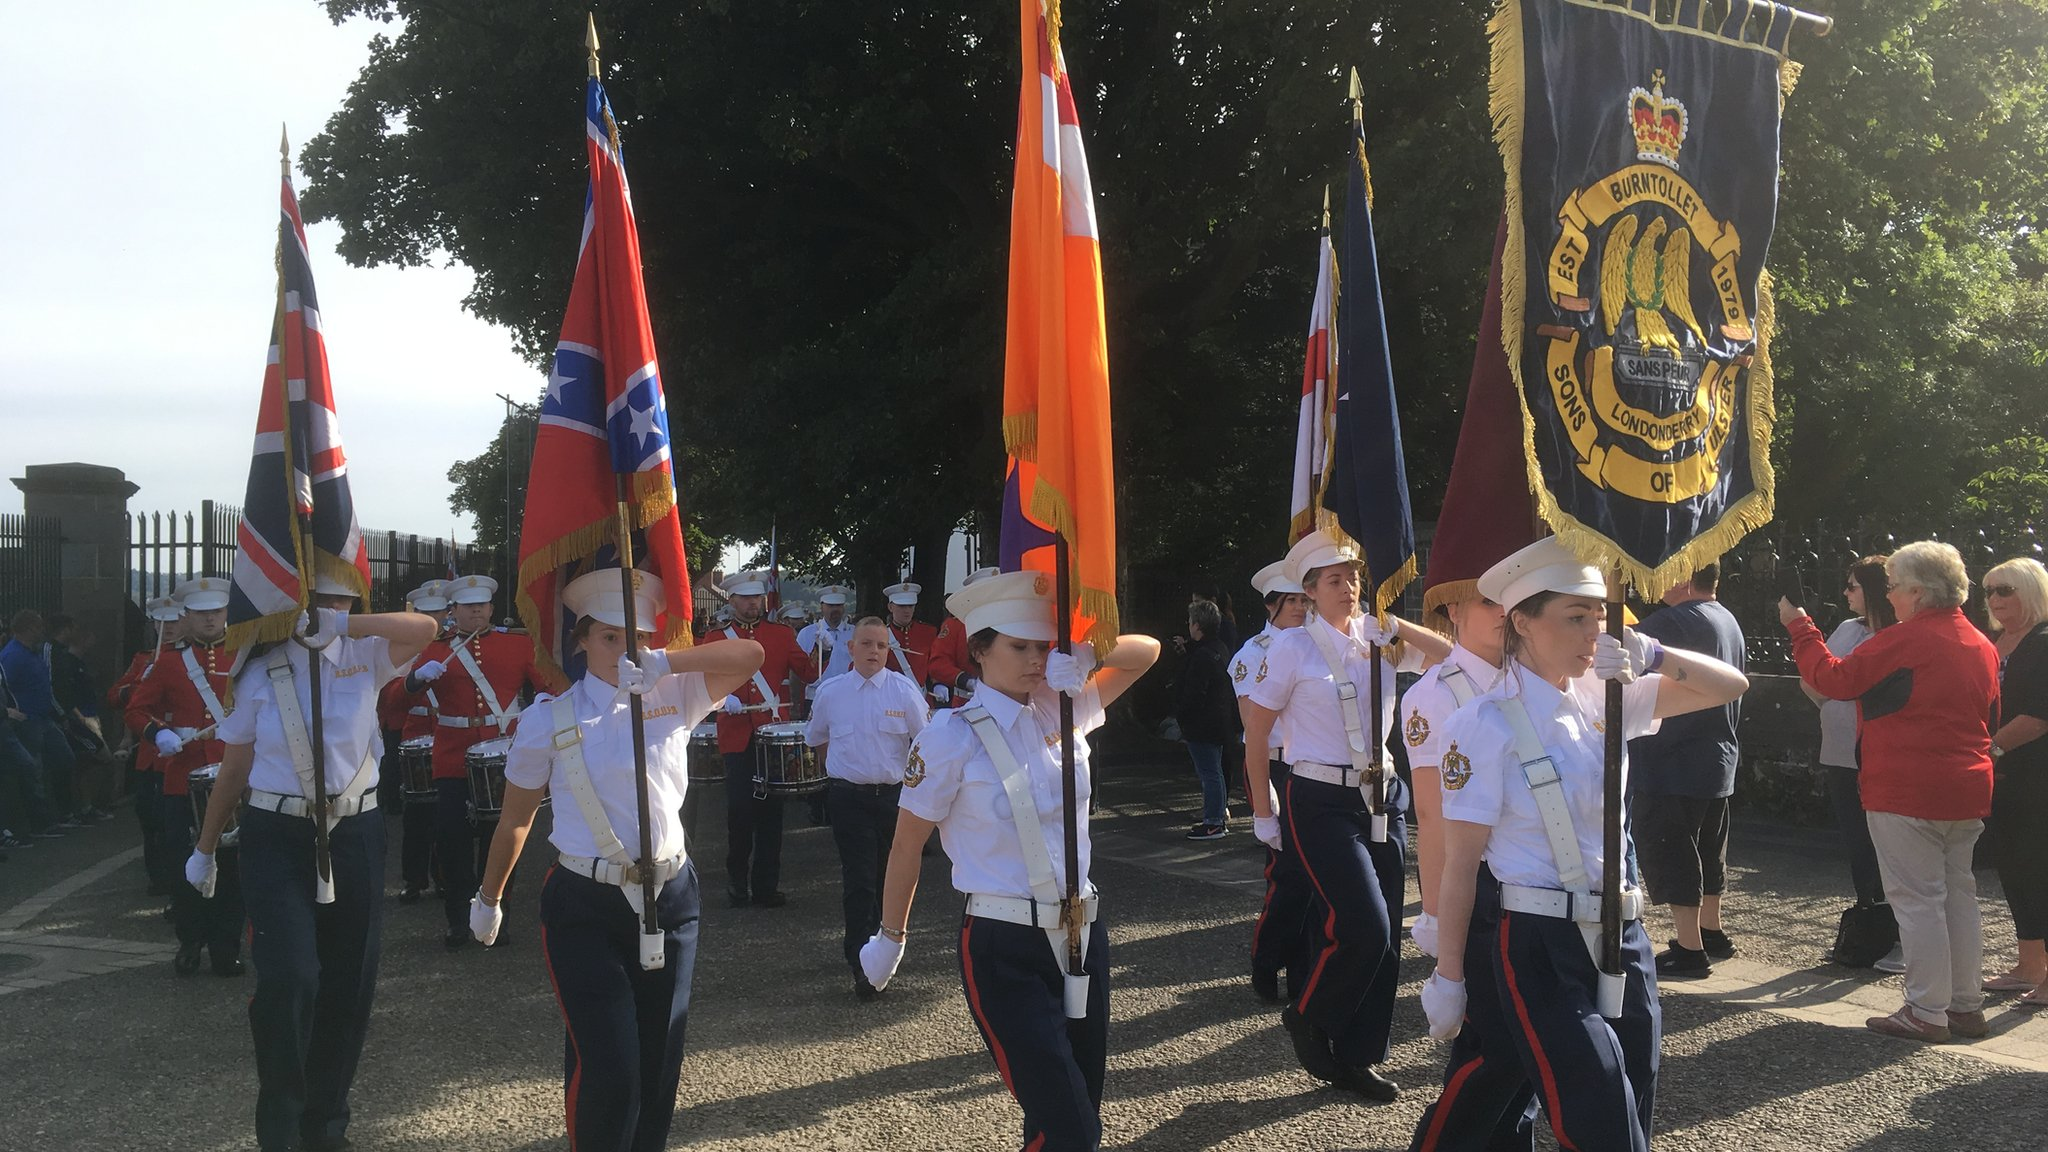 Apprentice Boys parade takes place in Londonderry